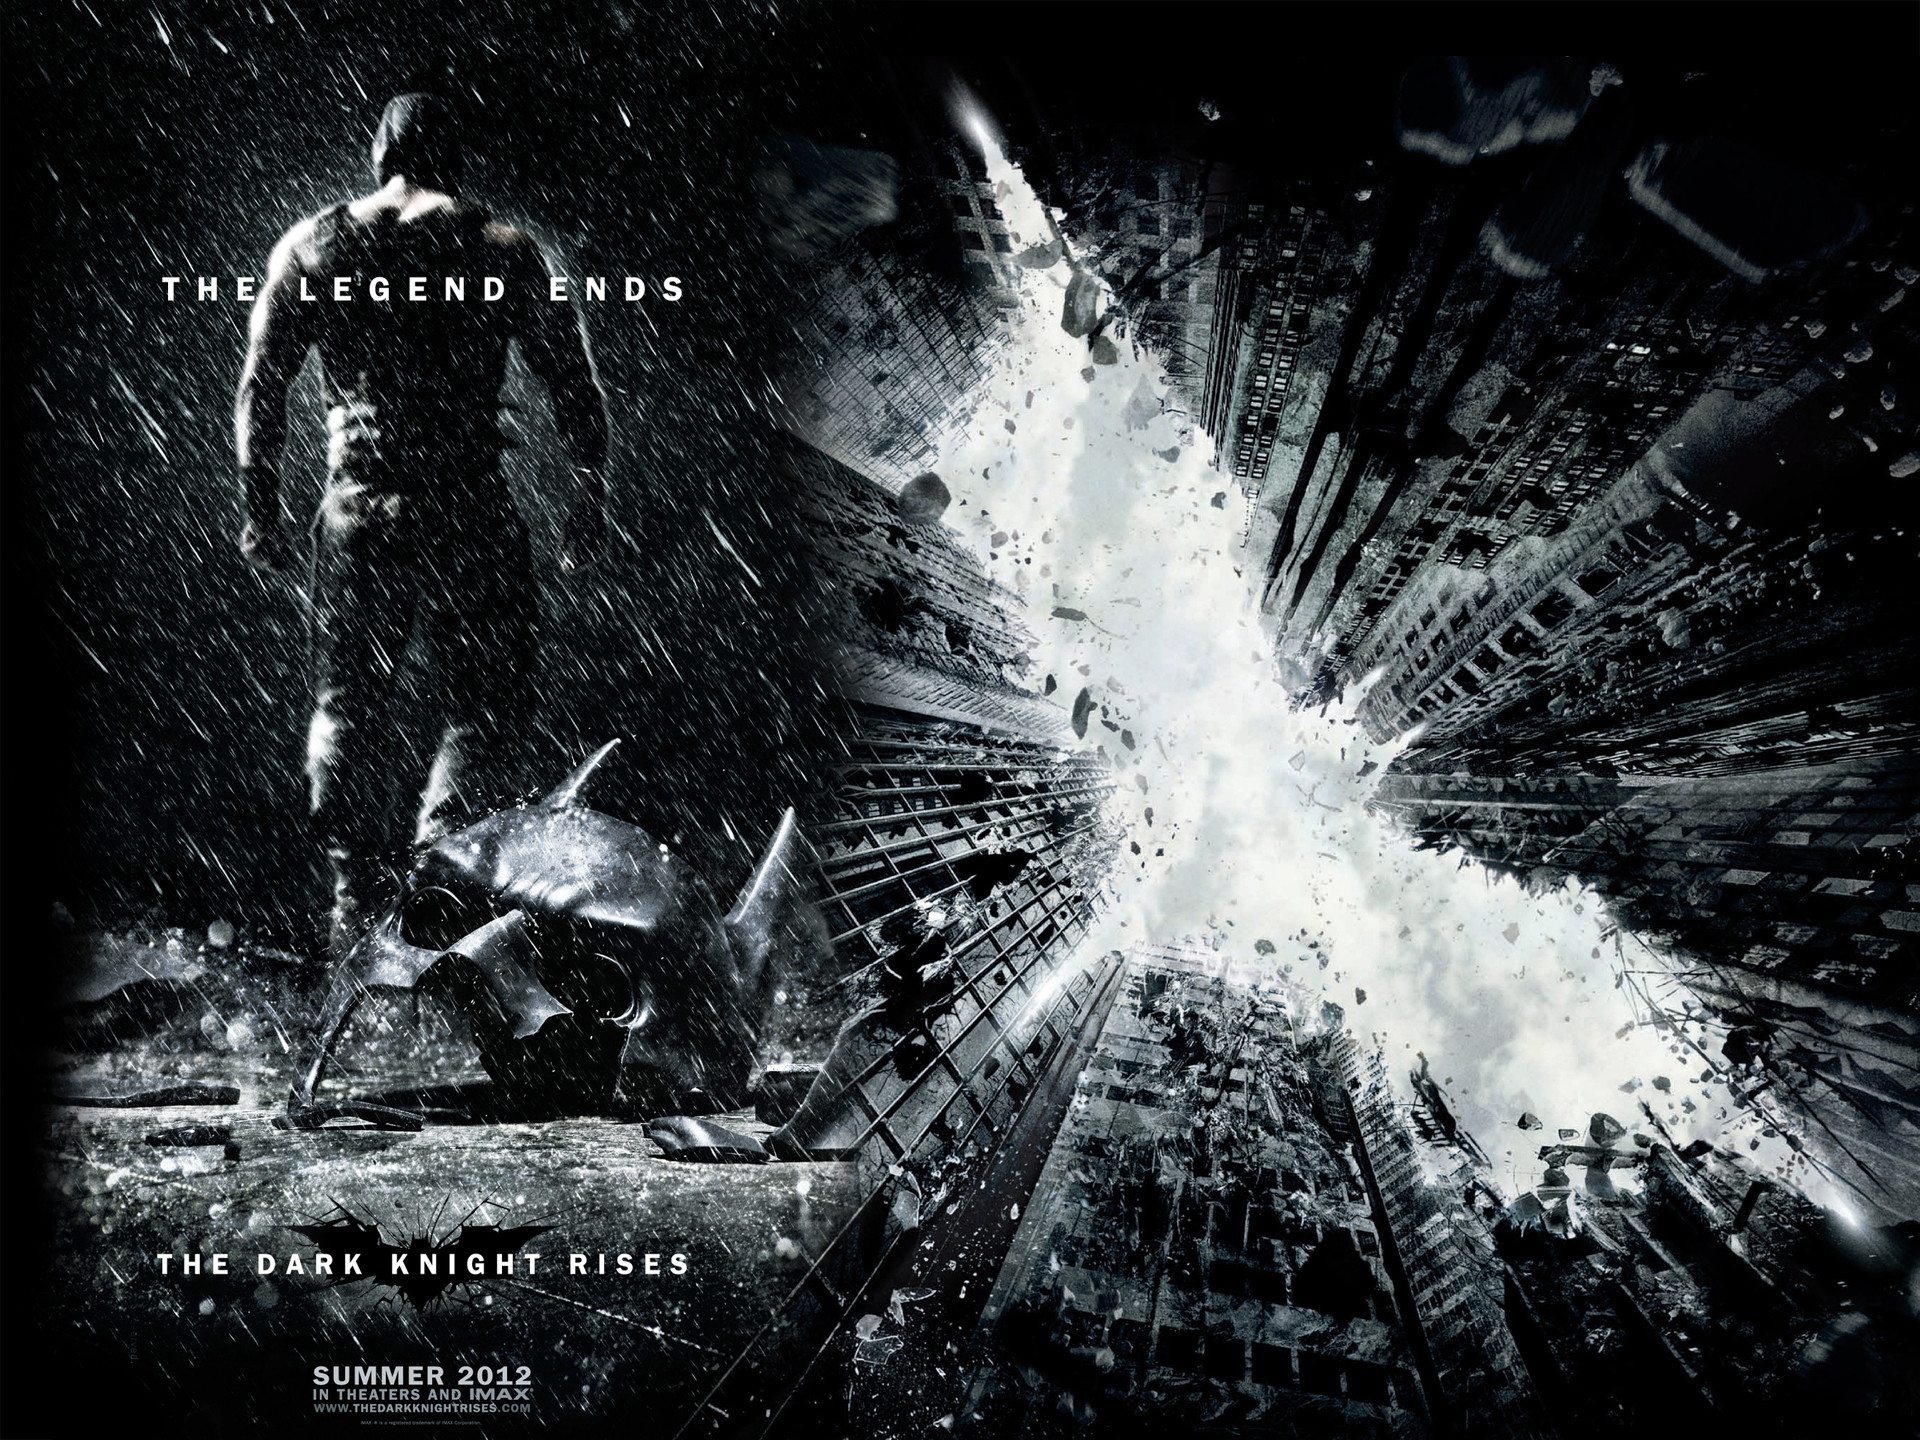 1920x1440 The Dark Knight Rises Bane Wallpaper Images & Pictures - Becuo